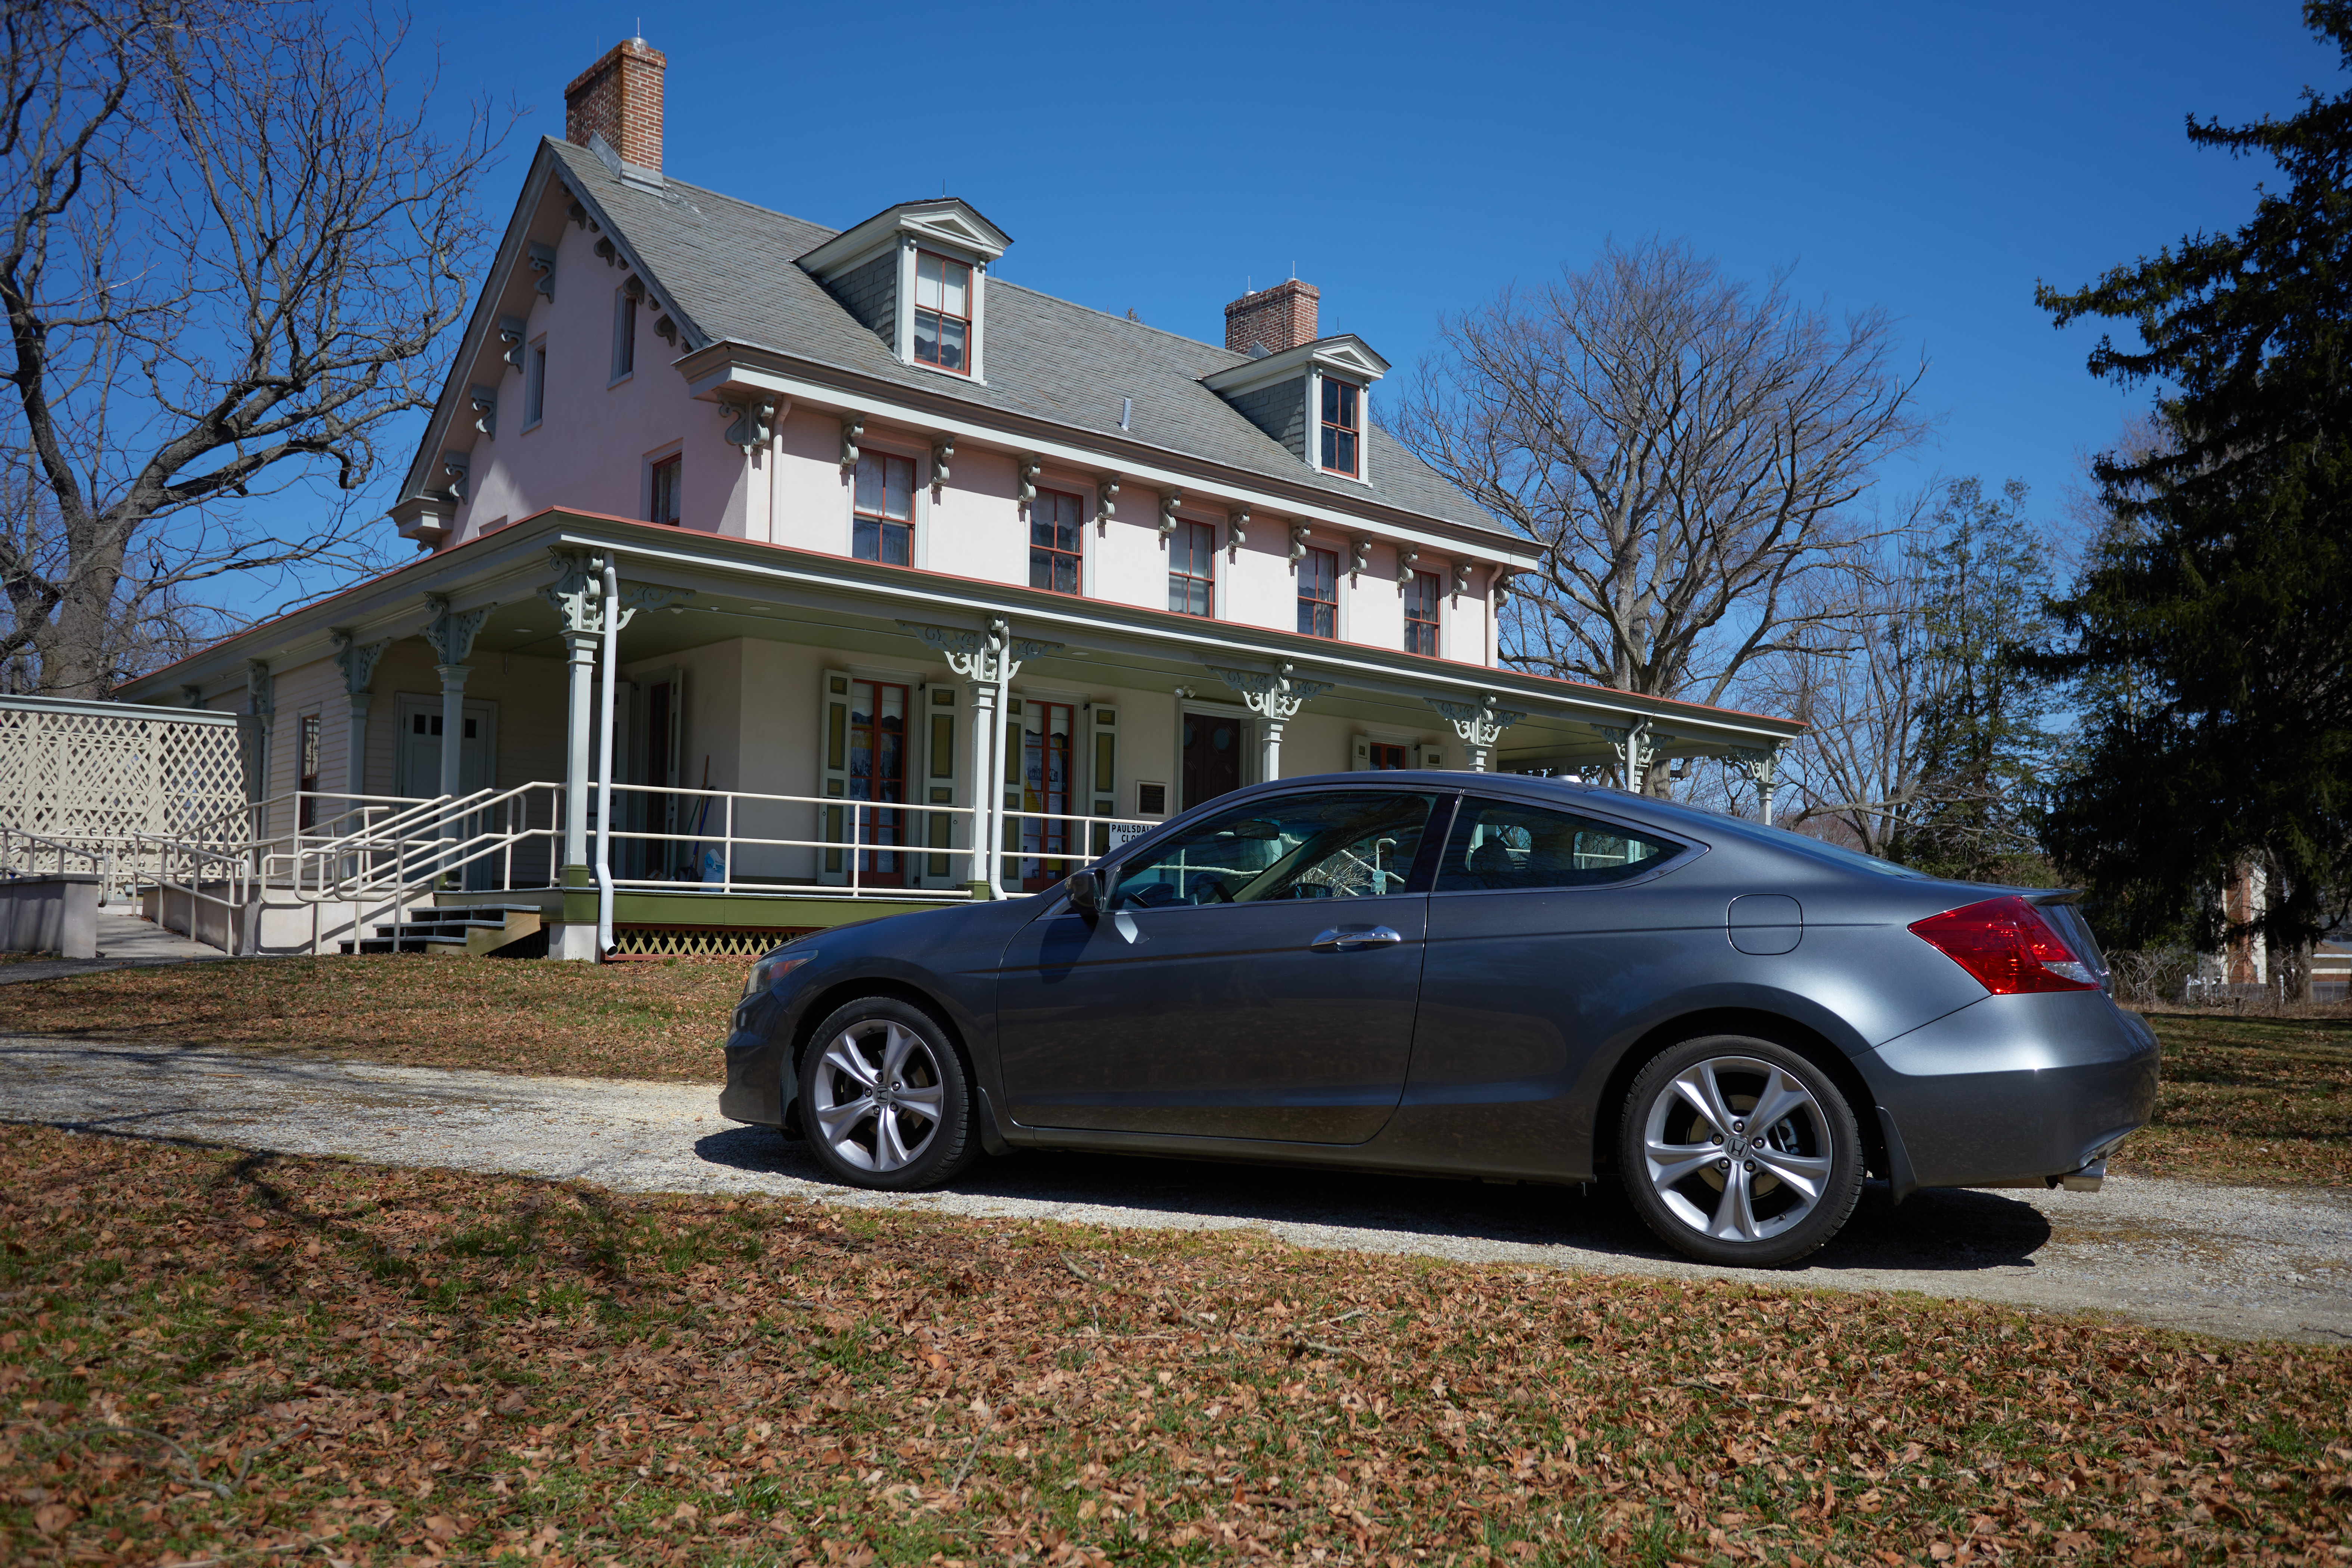 2012 Honda Accord parked in front of two-story mansion.